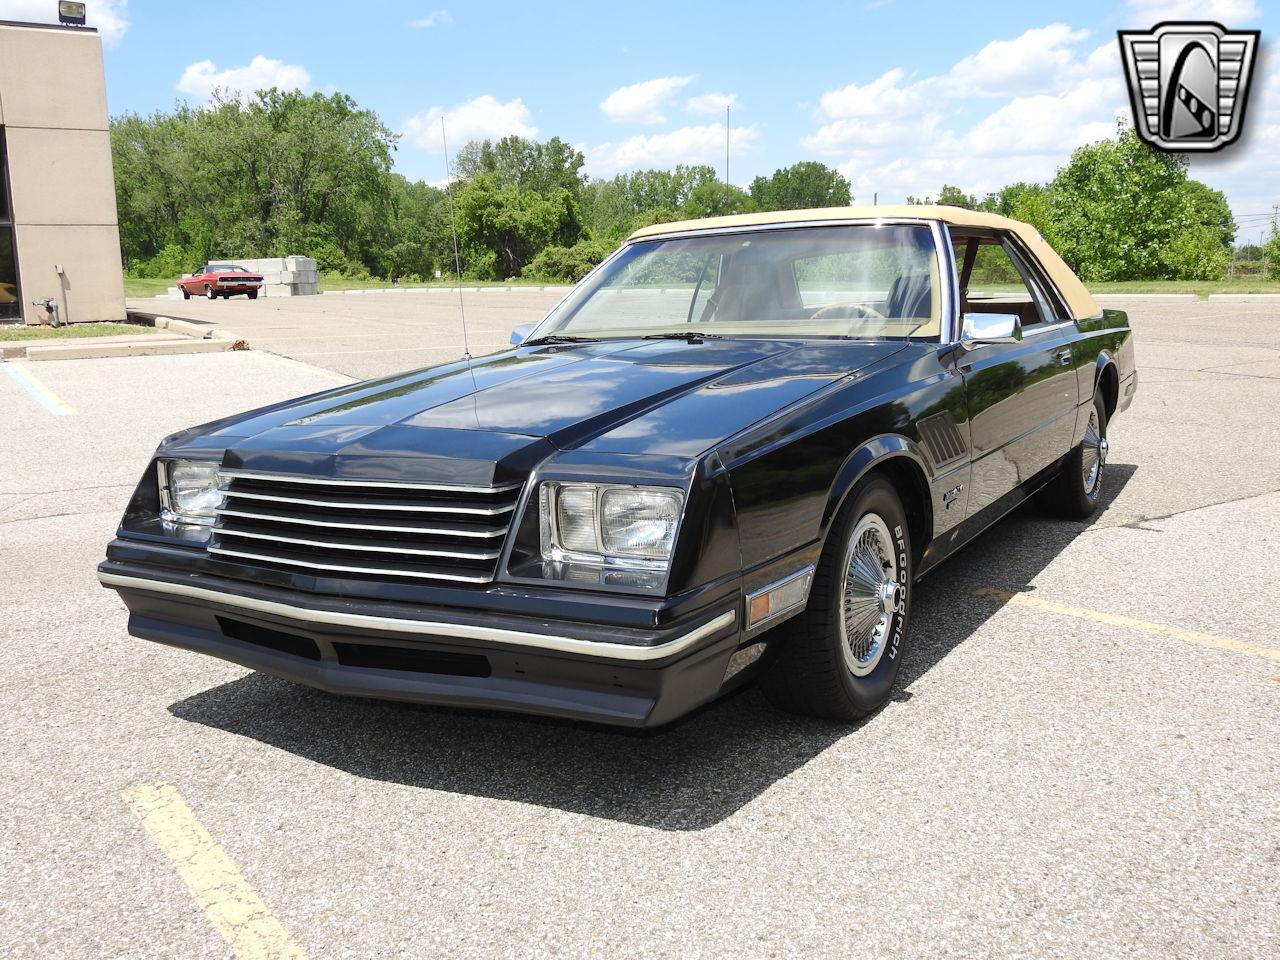 1981 Dodge Mirada (CC-1341202) for sale in O'Fallon, Illinois